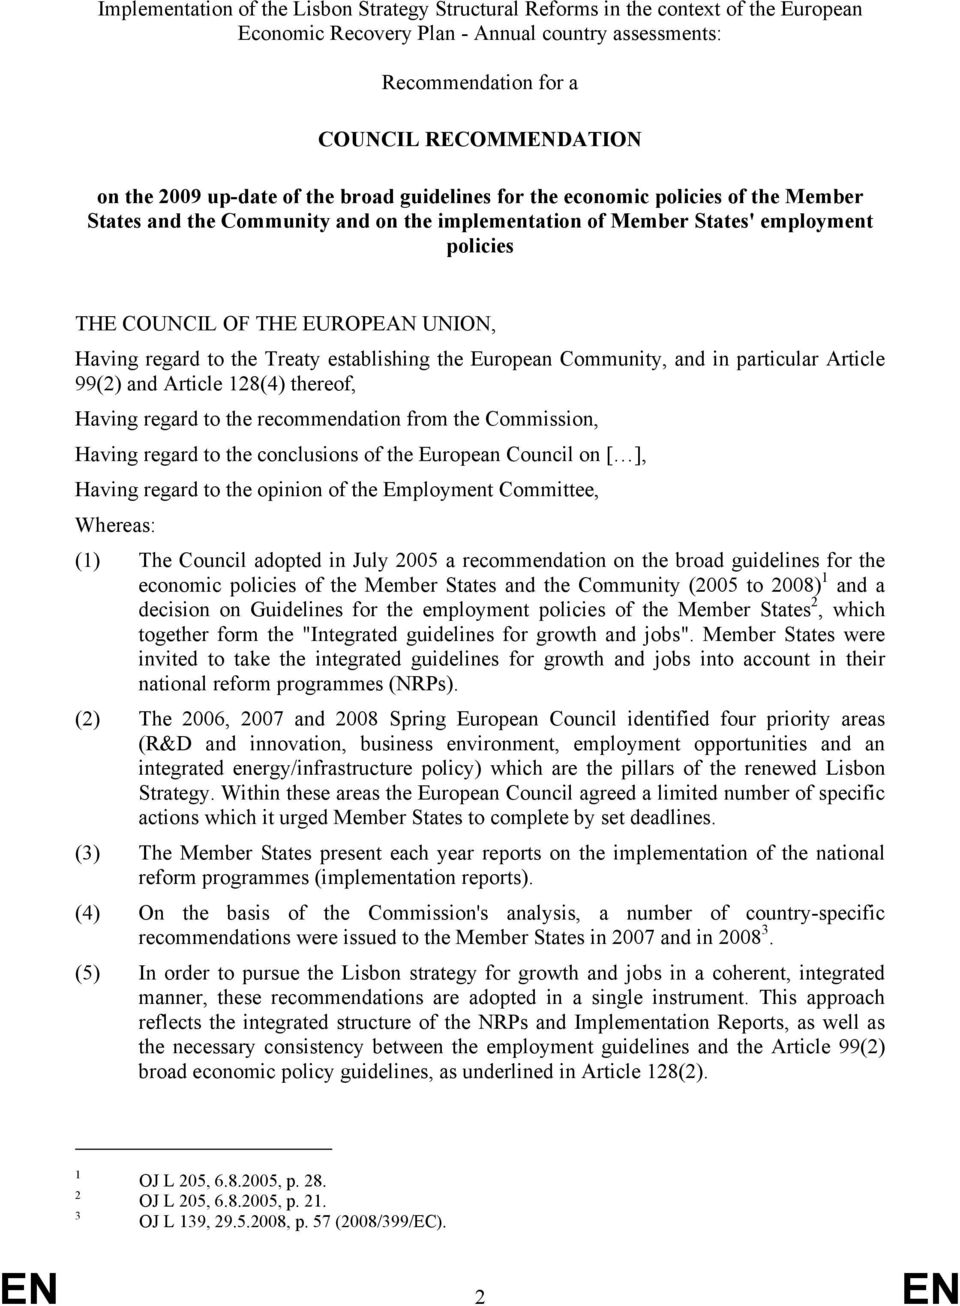 Having regard to the Treaty establishing the European Community, and in particular Article 99(2) and Article 128(4) thereof, Having regard to the recommendation from the Commission, Having regard to